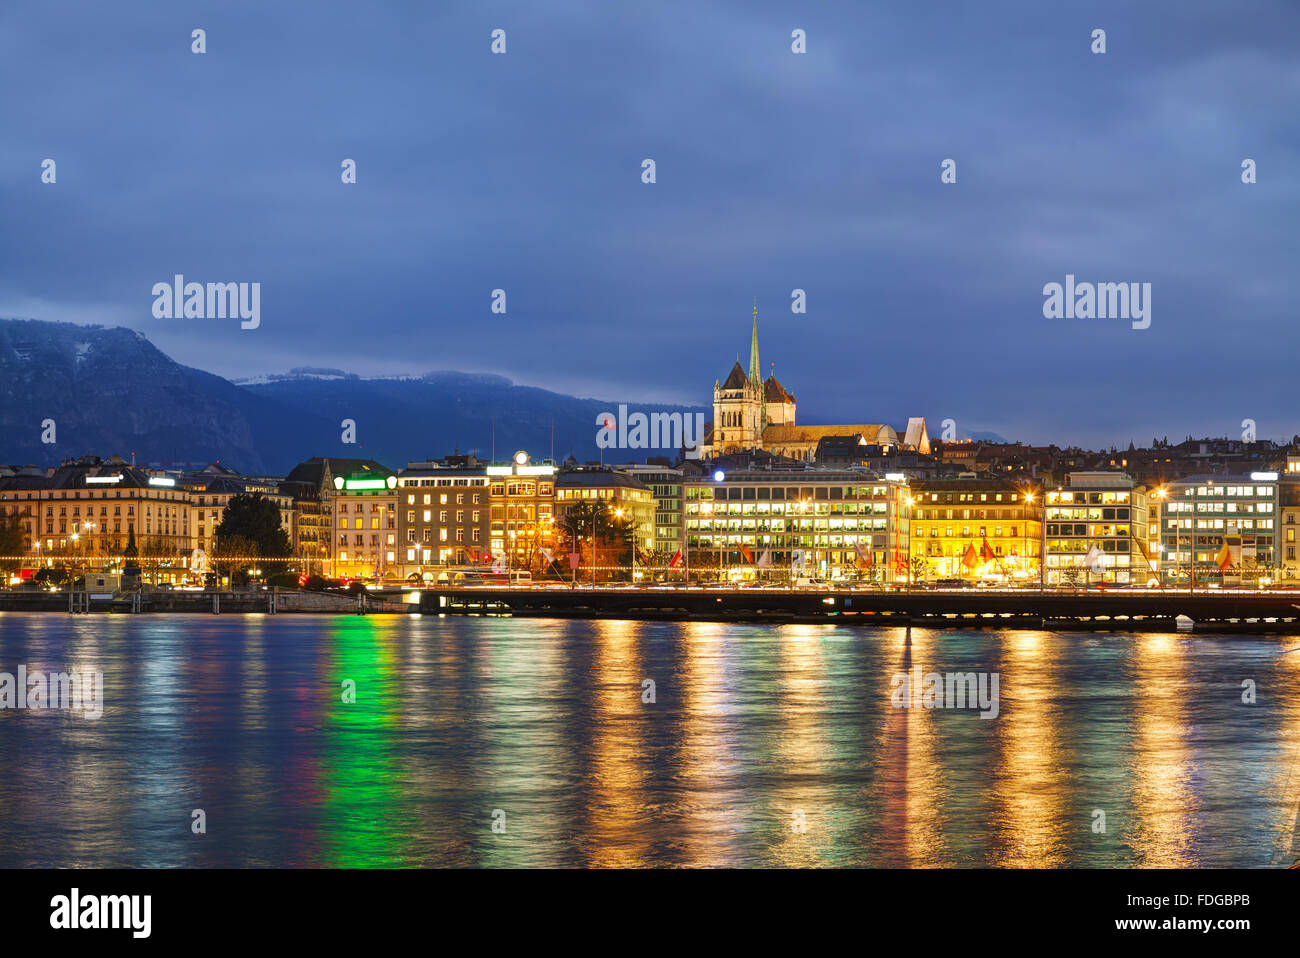 Overview of Geneva, Switzerland at the night time - Stock Image